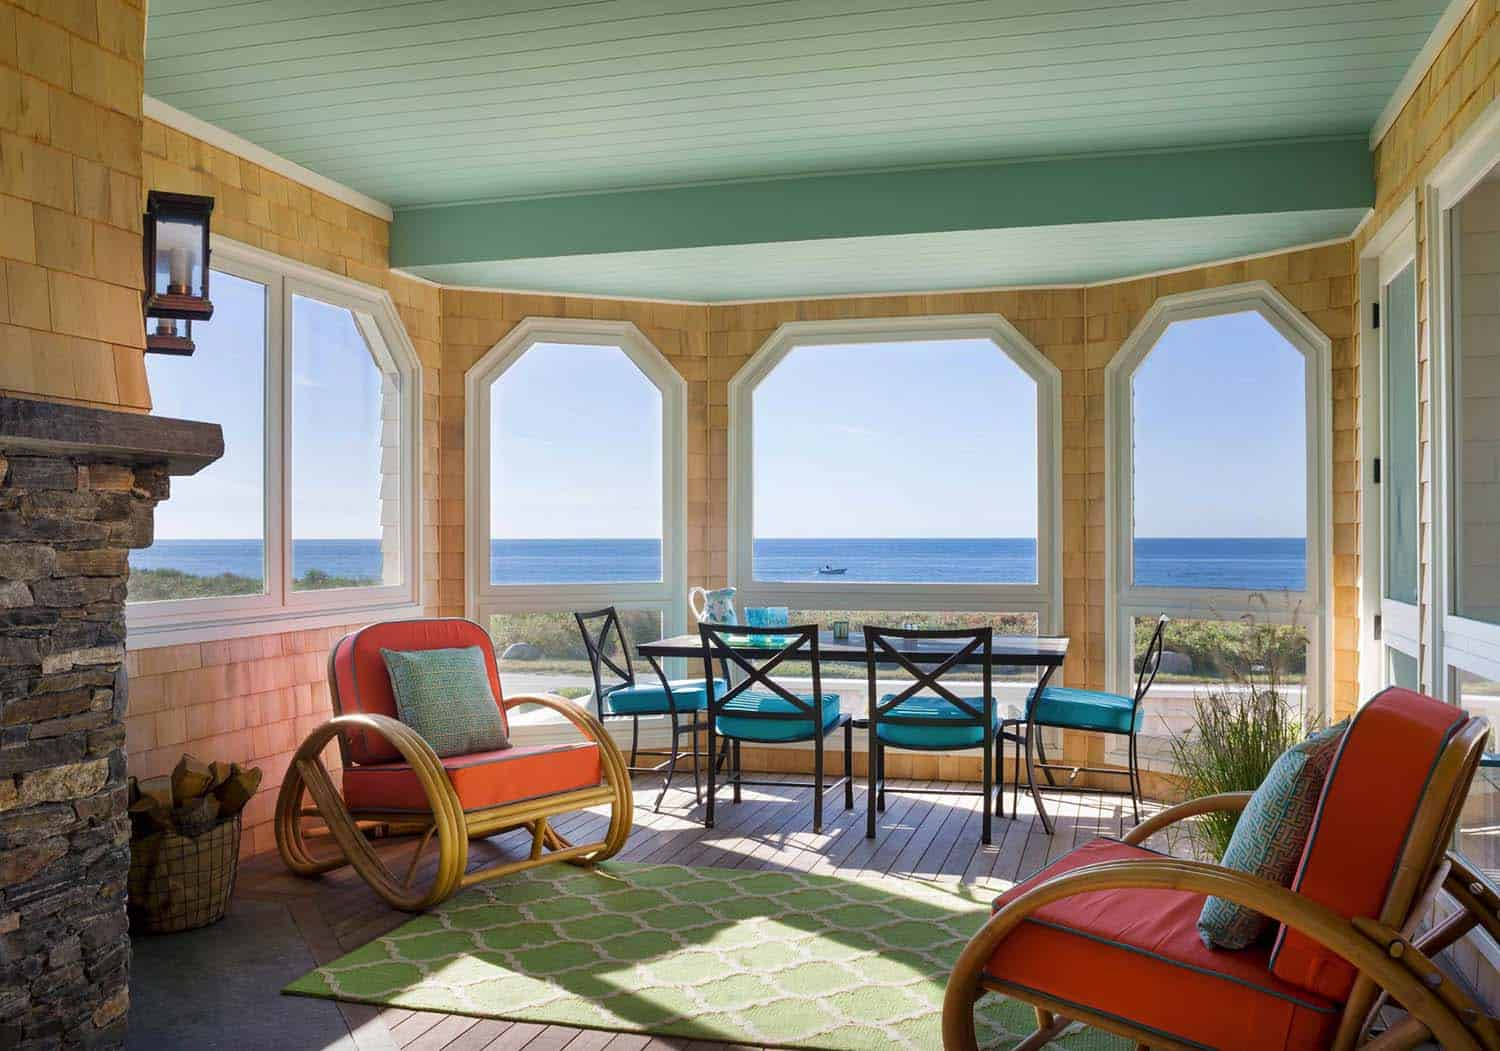 Oceanfront Home-LEED Silver-George Penniman Architects-03-1 Kindesign